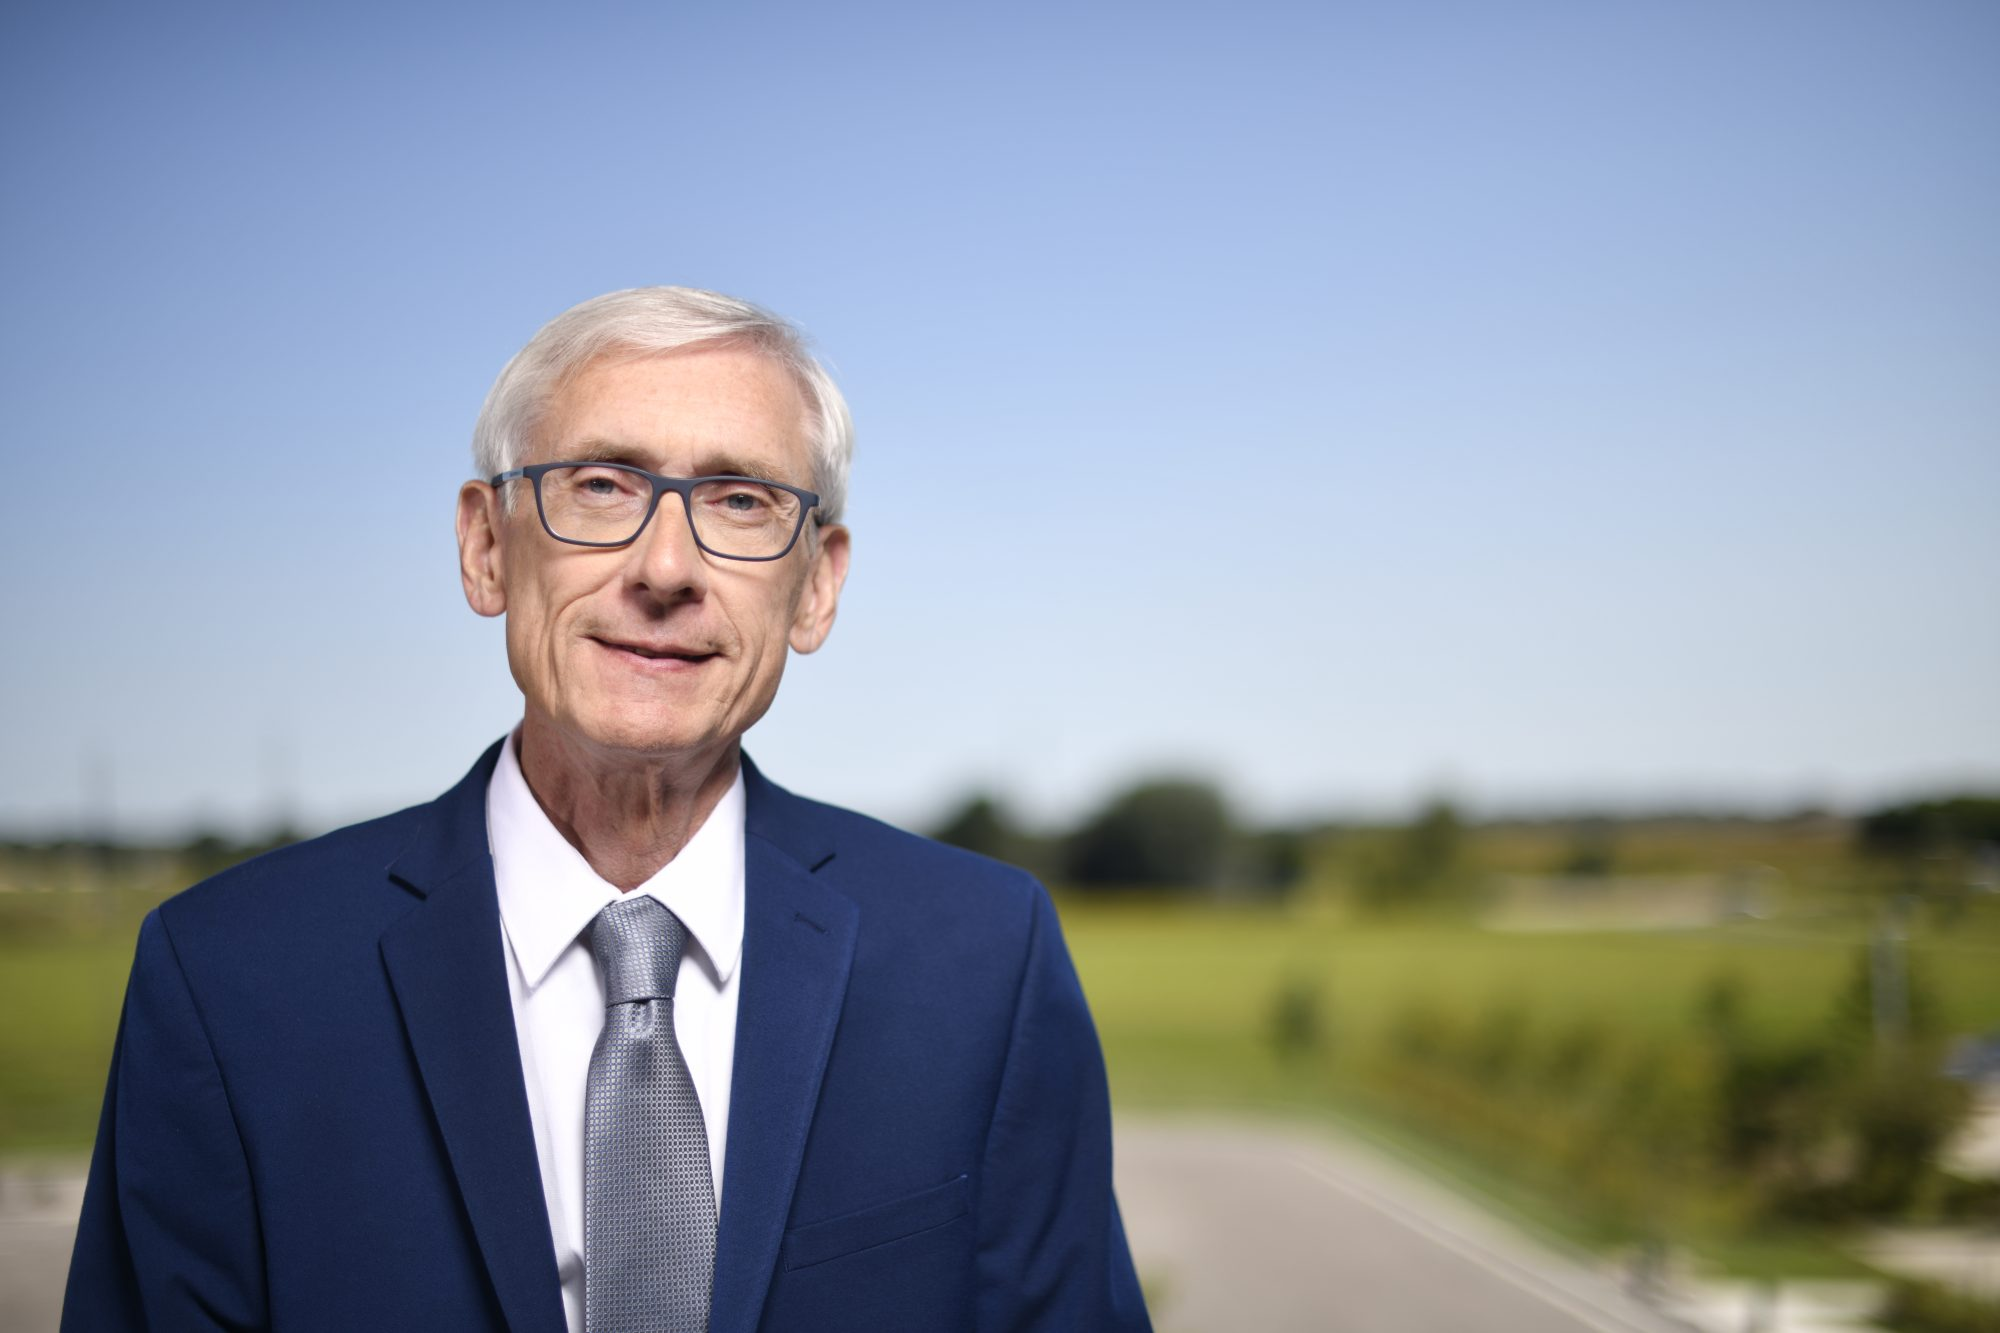 Gov. Evers Endorses Water Quality Recommendations from DNR, DATCP, DHS